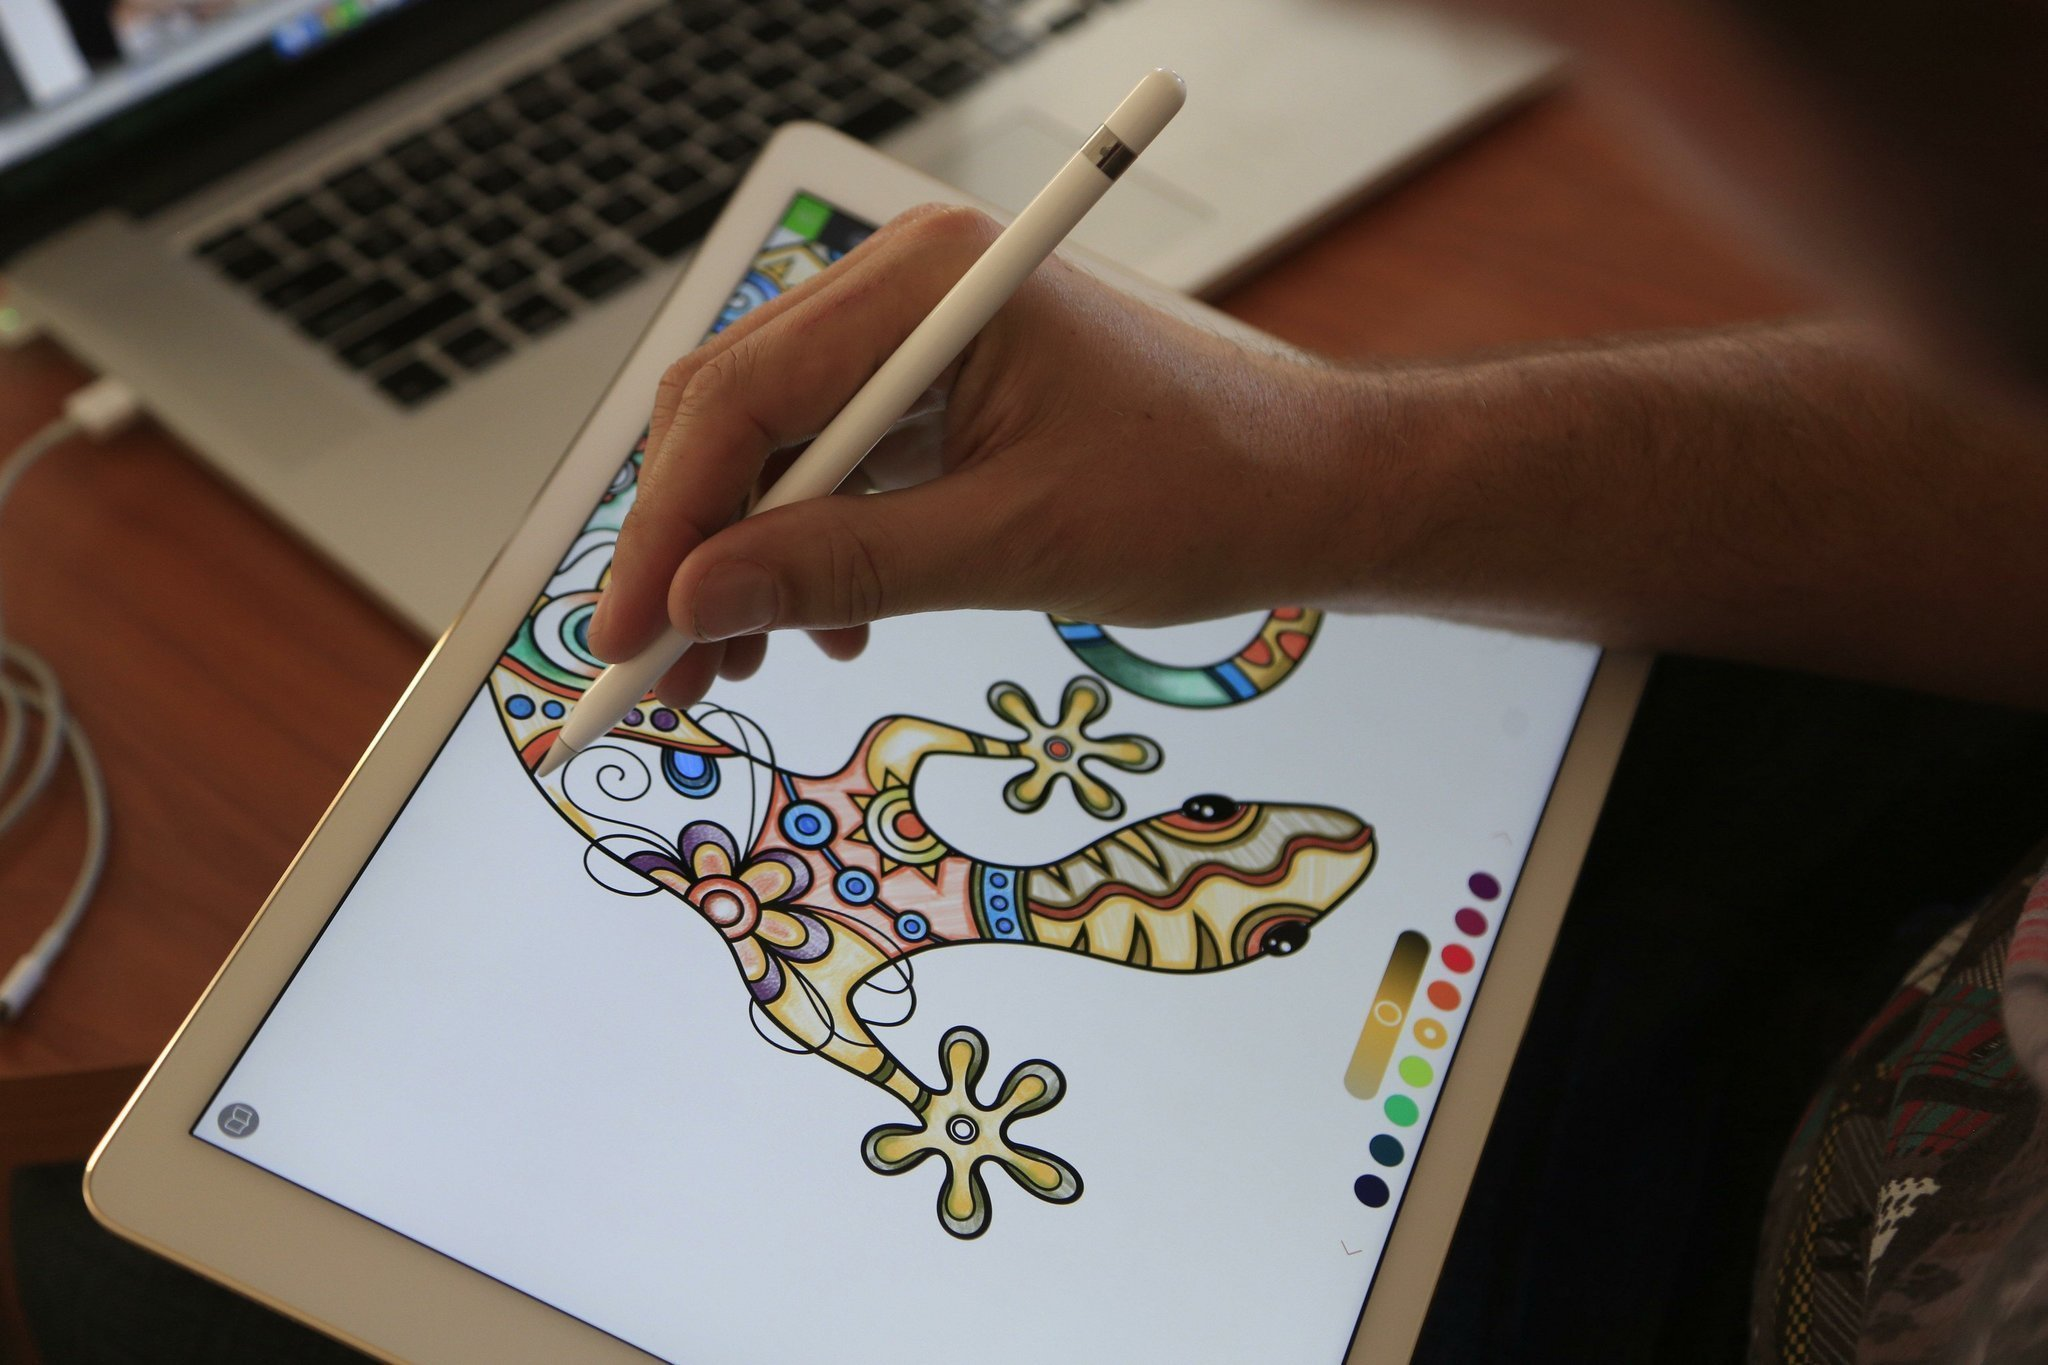 Pigment Is A Lifelike Adult Coloring Book App For Ios The San